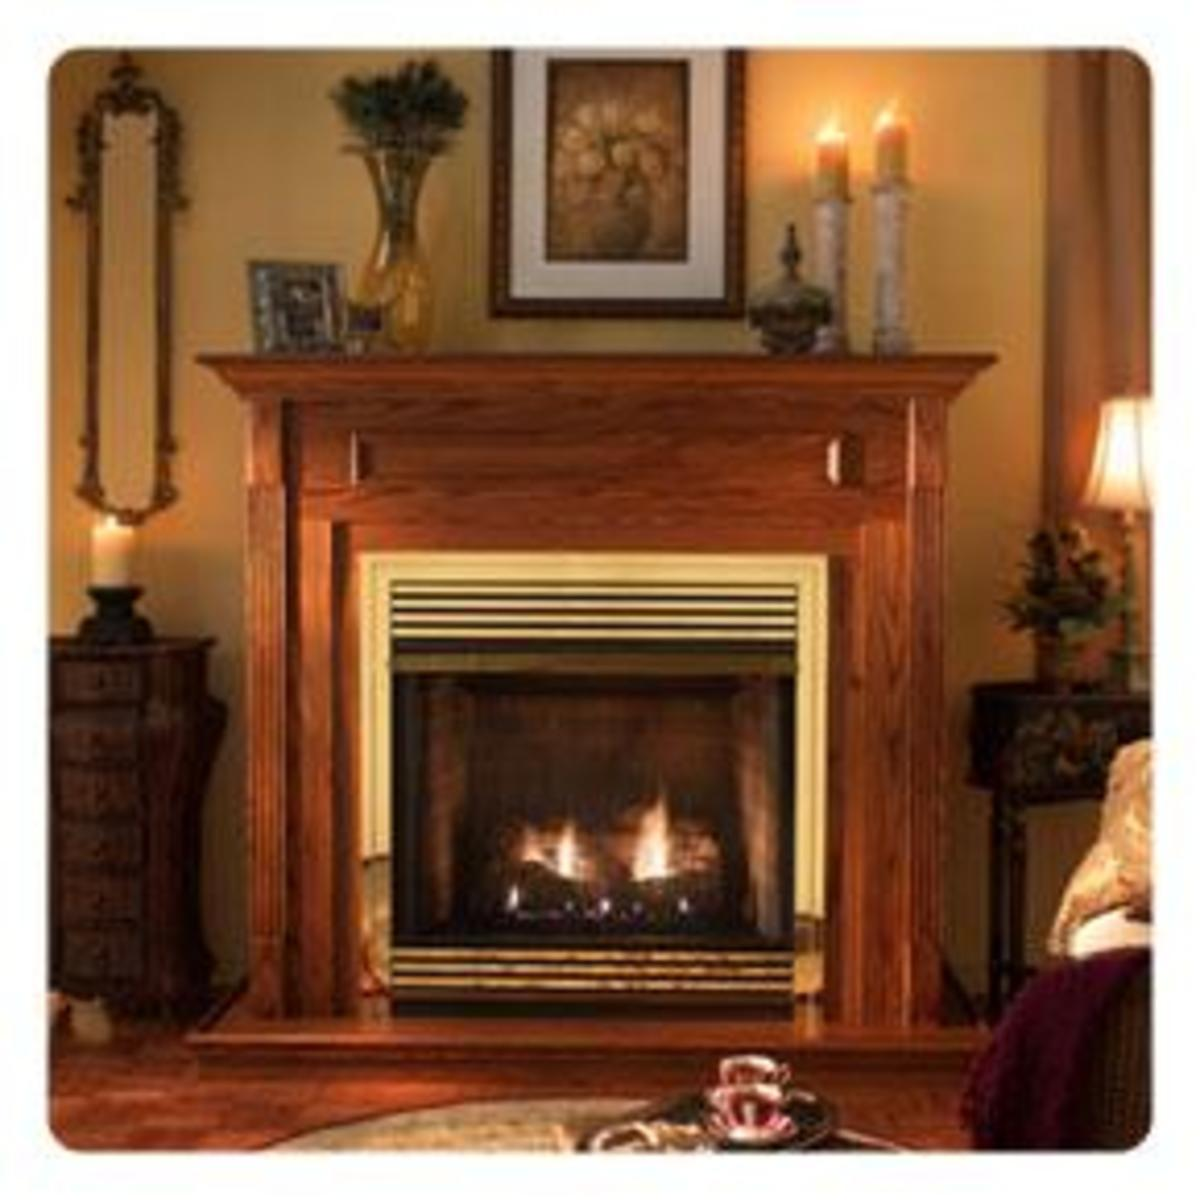 Vent-free gas fireplace with mantle.